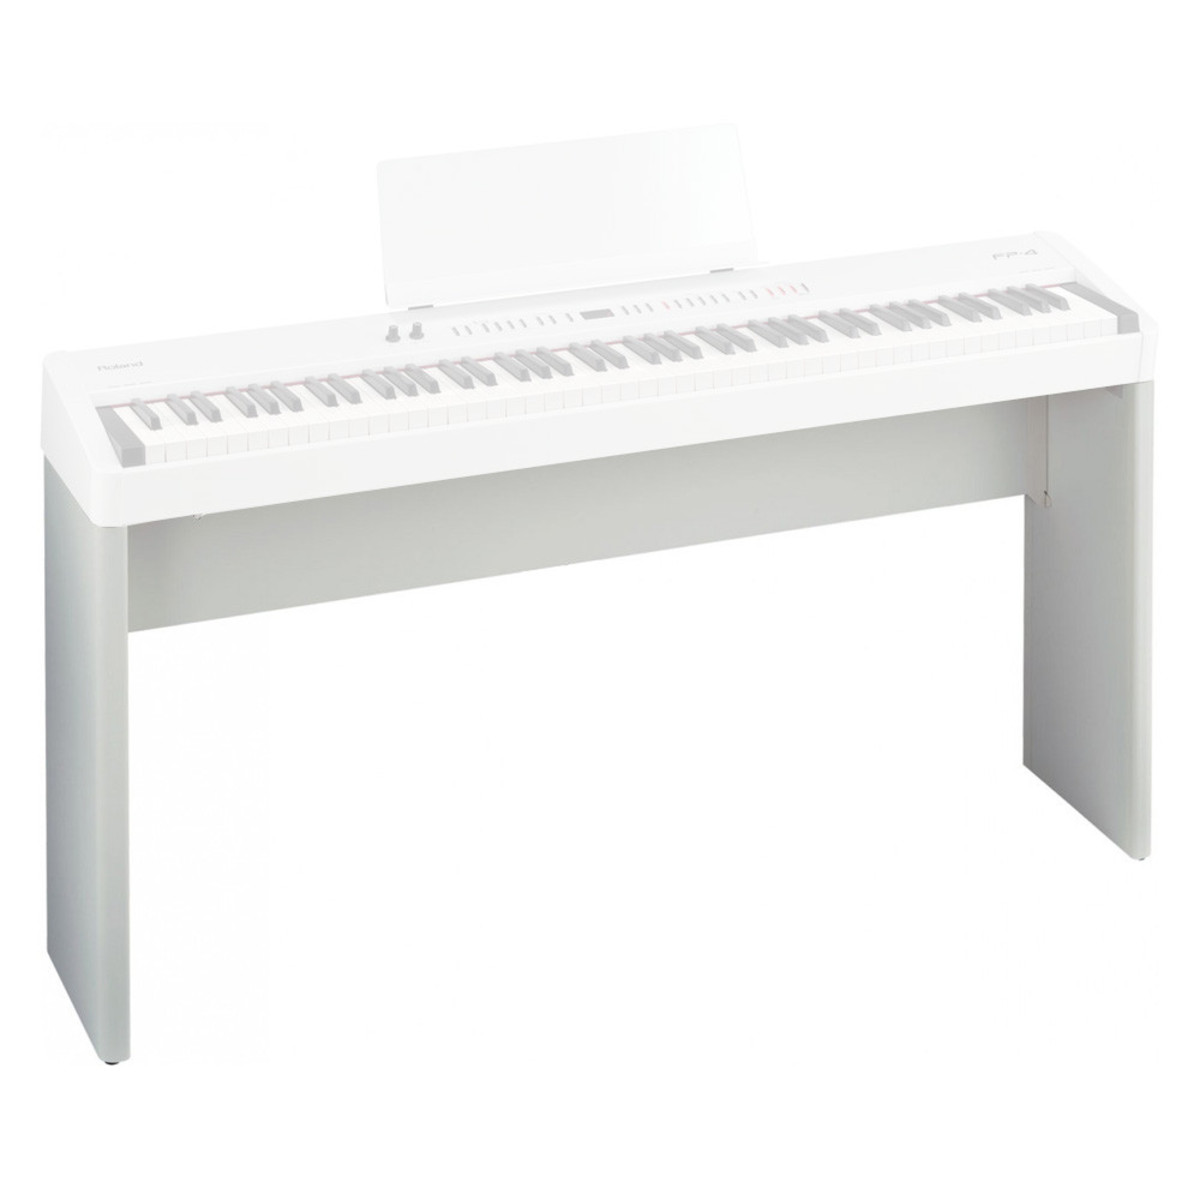 Dimensions For Yamaha Wh Music Rest